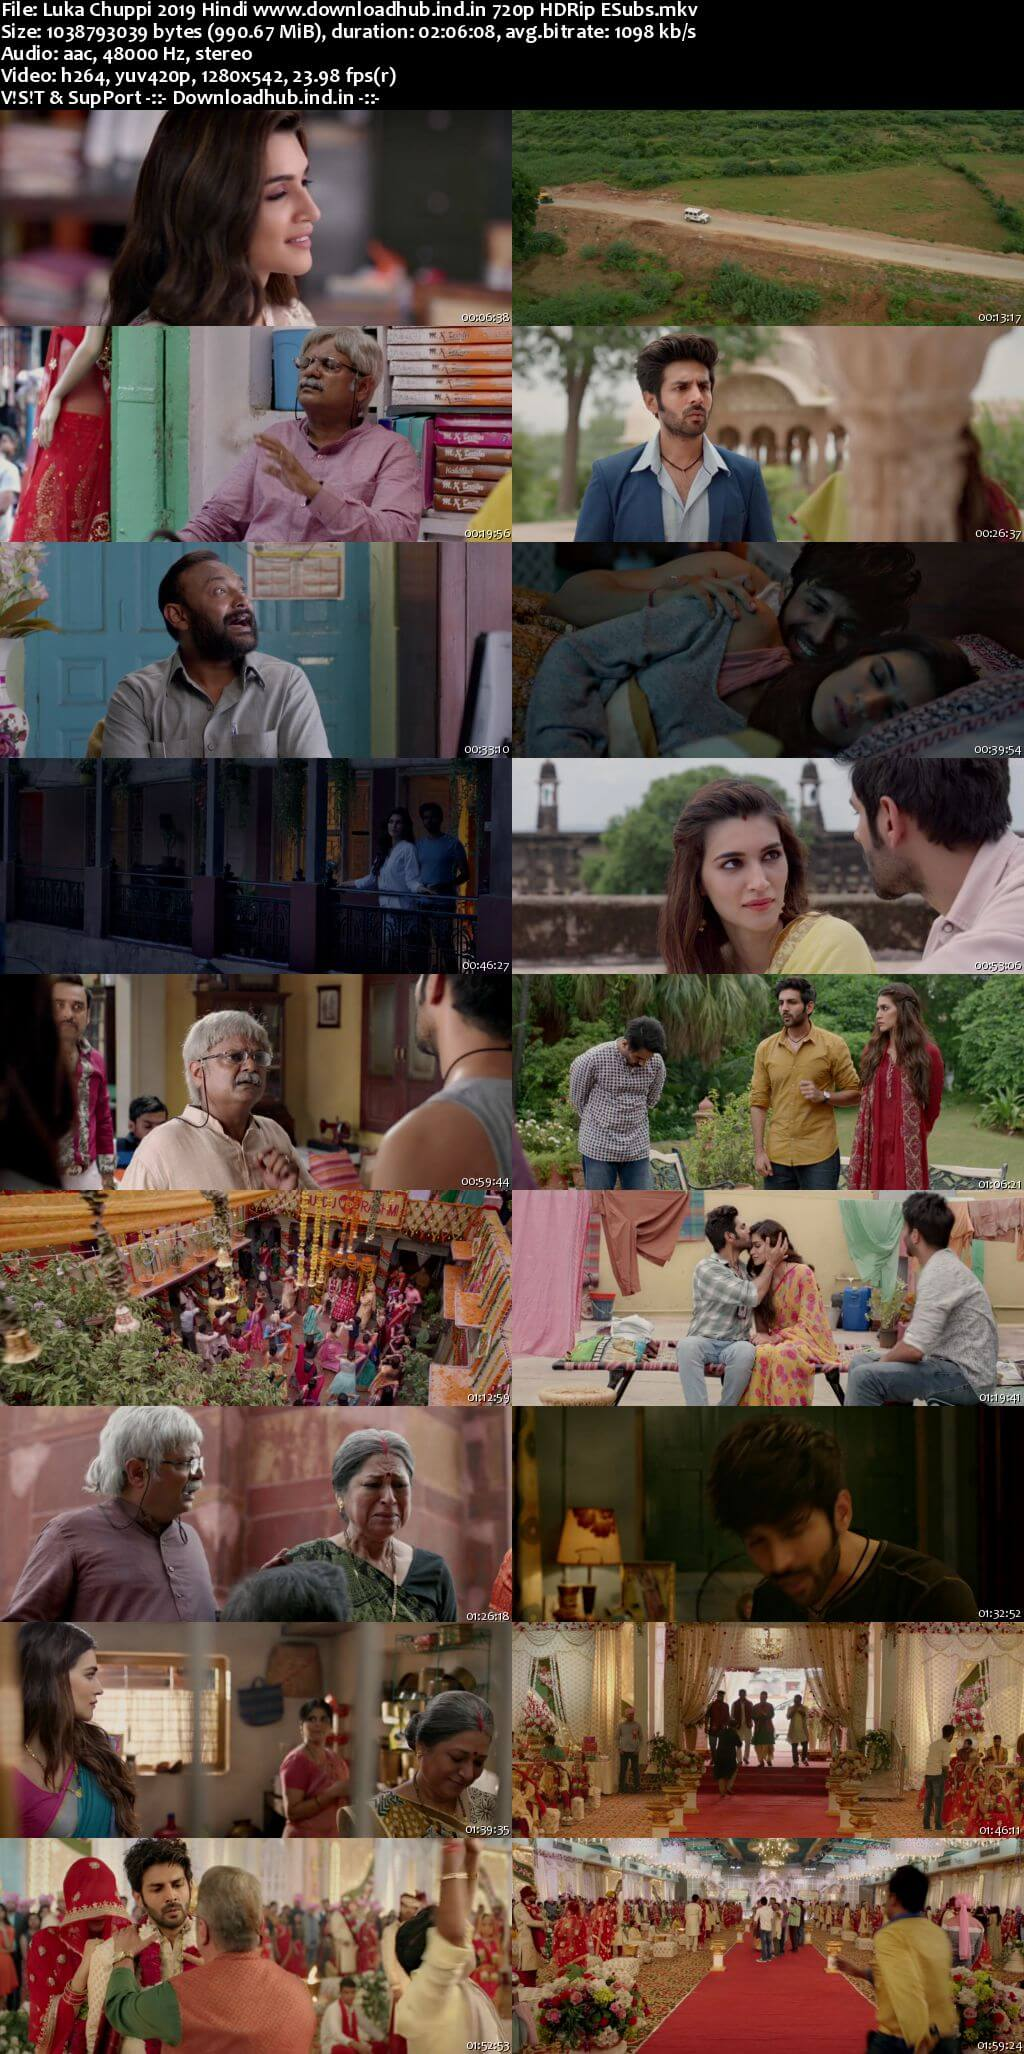 Luka Chuppi 2019 Hindi 720p HDRip ESubs